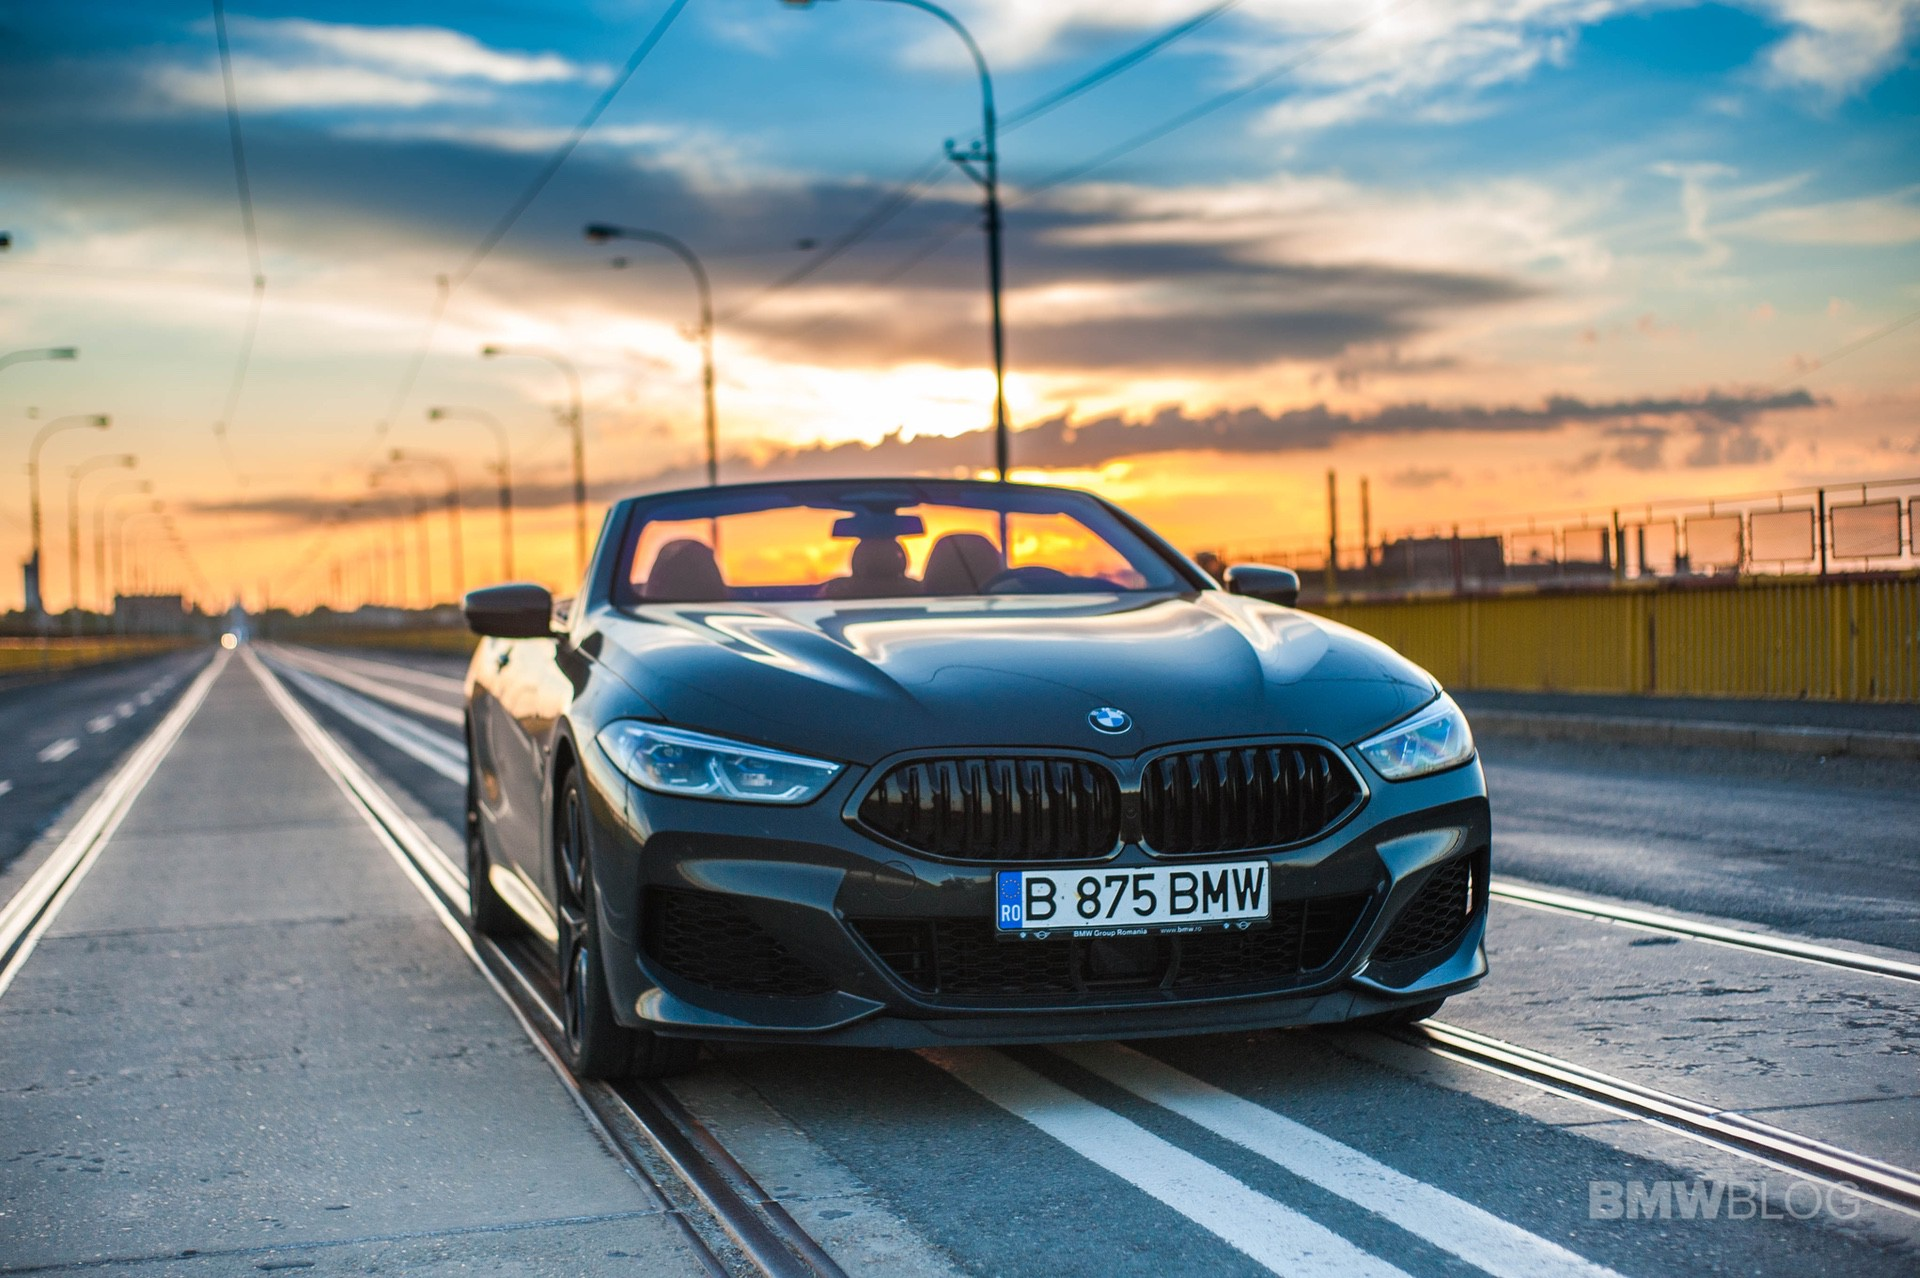 2019 BMW M850i Convertible test drive 09